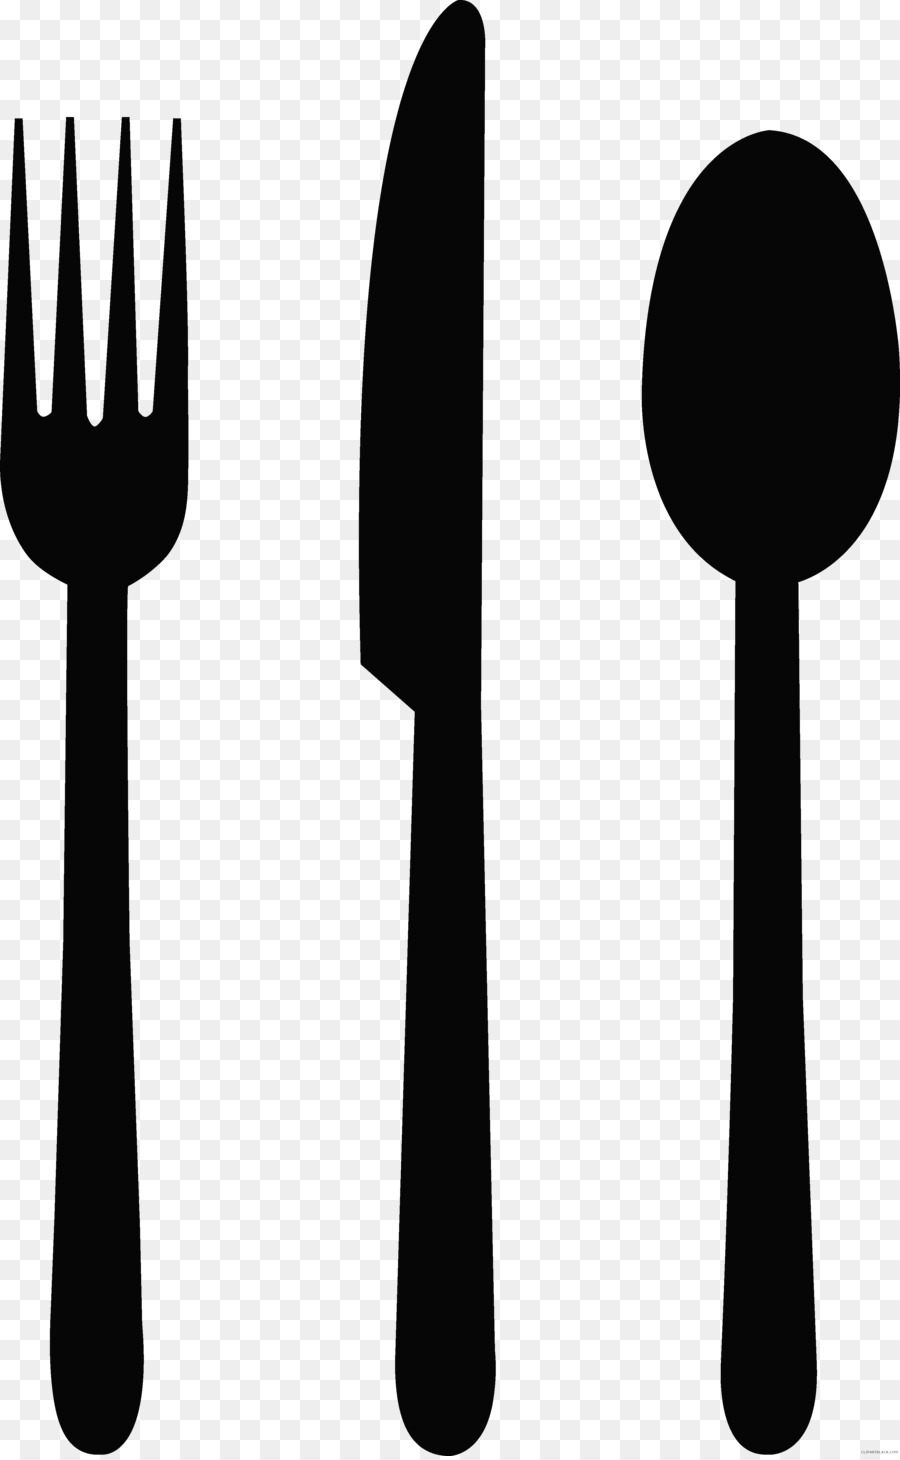 Clipart spoon and fork clipart library stock Kitchen Cartoon clipart - Spoon, Fork, Knife, transparent clip art clipart library stock